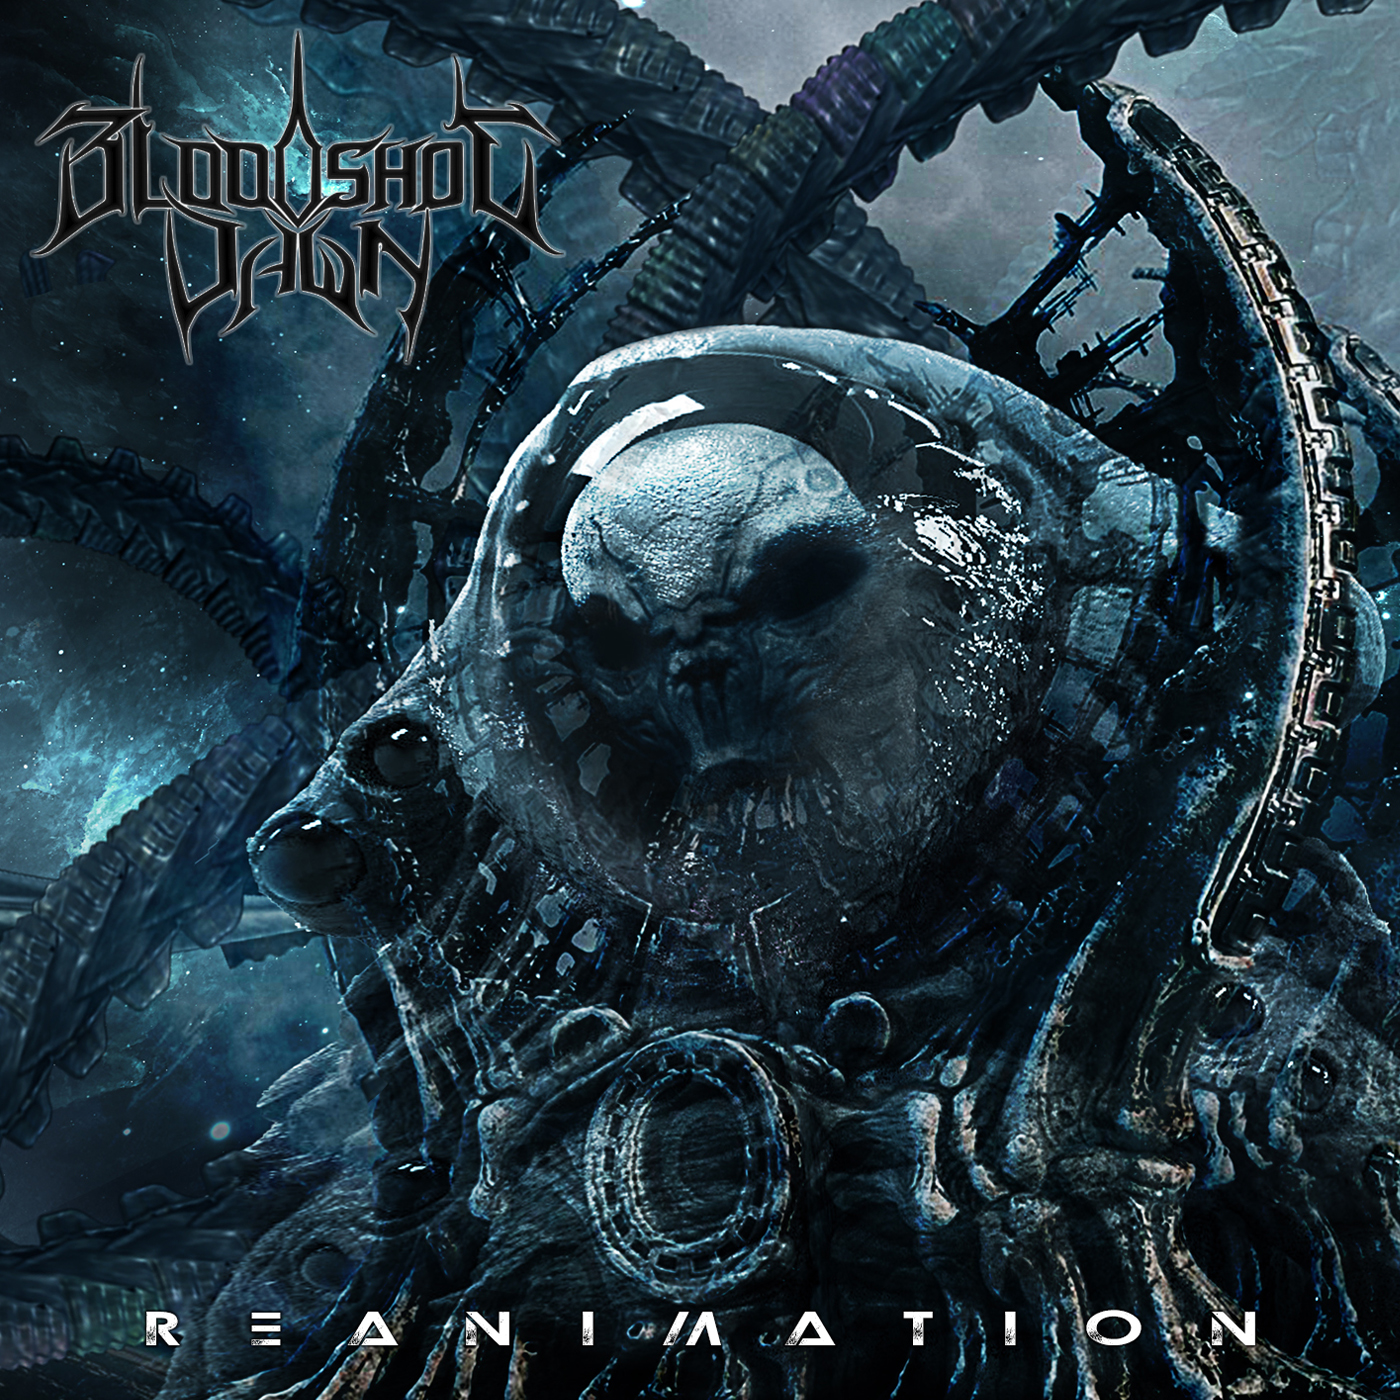 Bloodshot Dawn - Reanimation Artwork